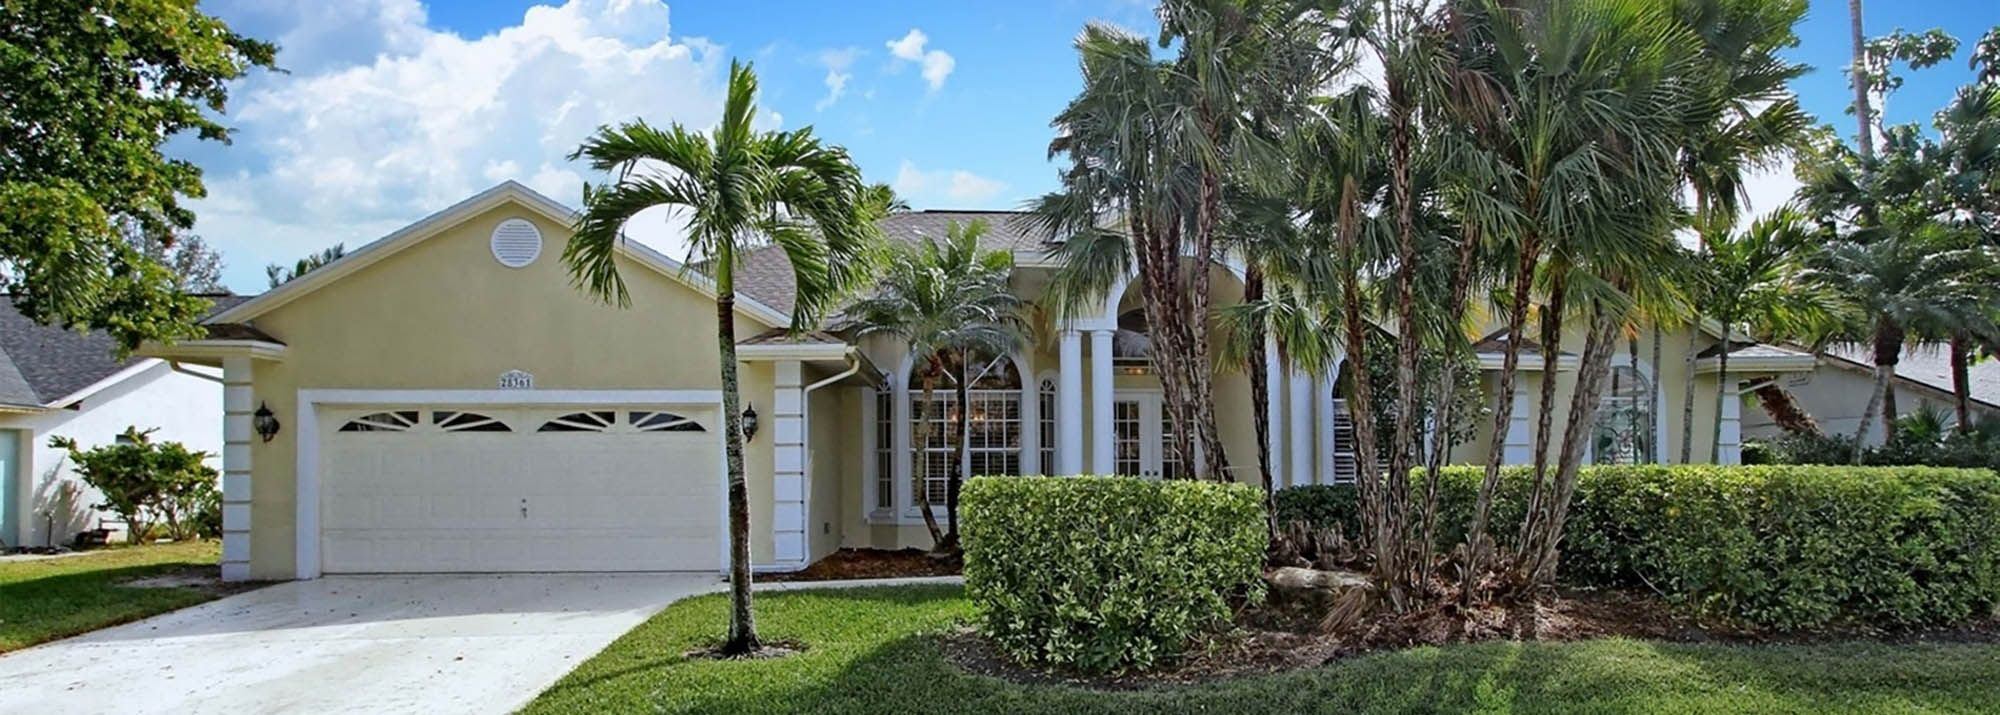 Pin By Altru Realty On Homes For Sale In Bonita Springs Florida House Styles Outdoor Decor Florida